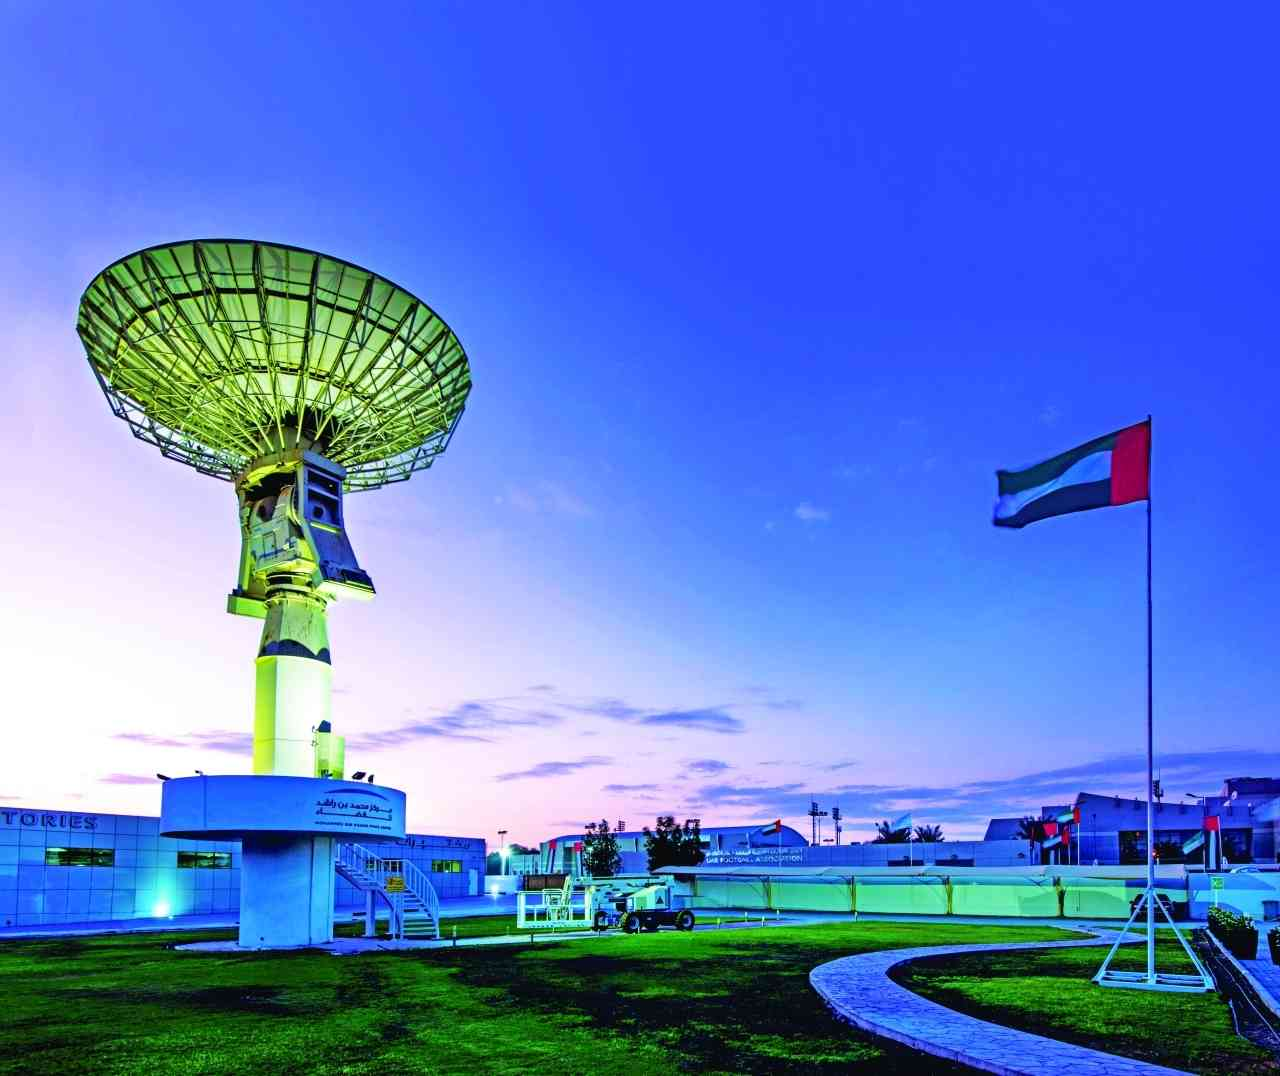 For the first time in the Arab world, Dubai will host tomorrow the 2021 International Space Conference – UAE breaking news